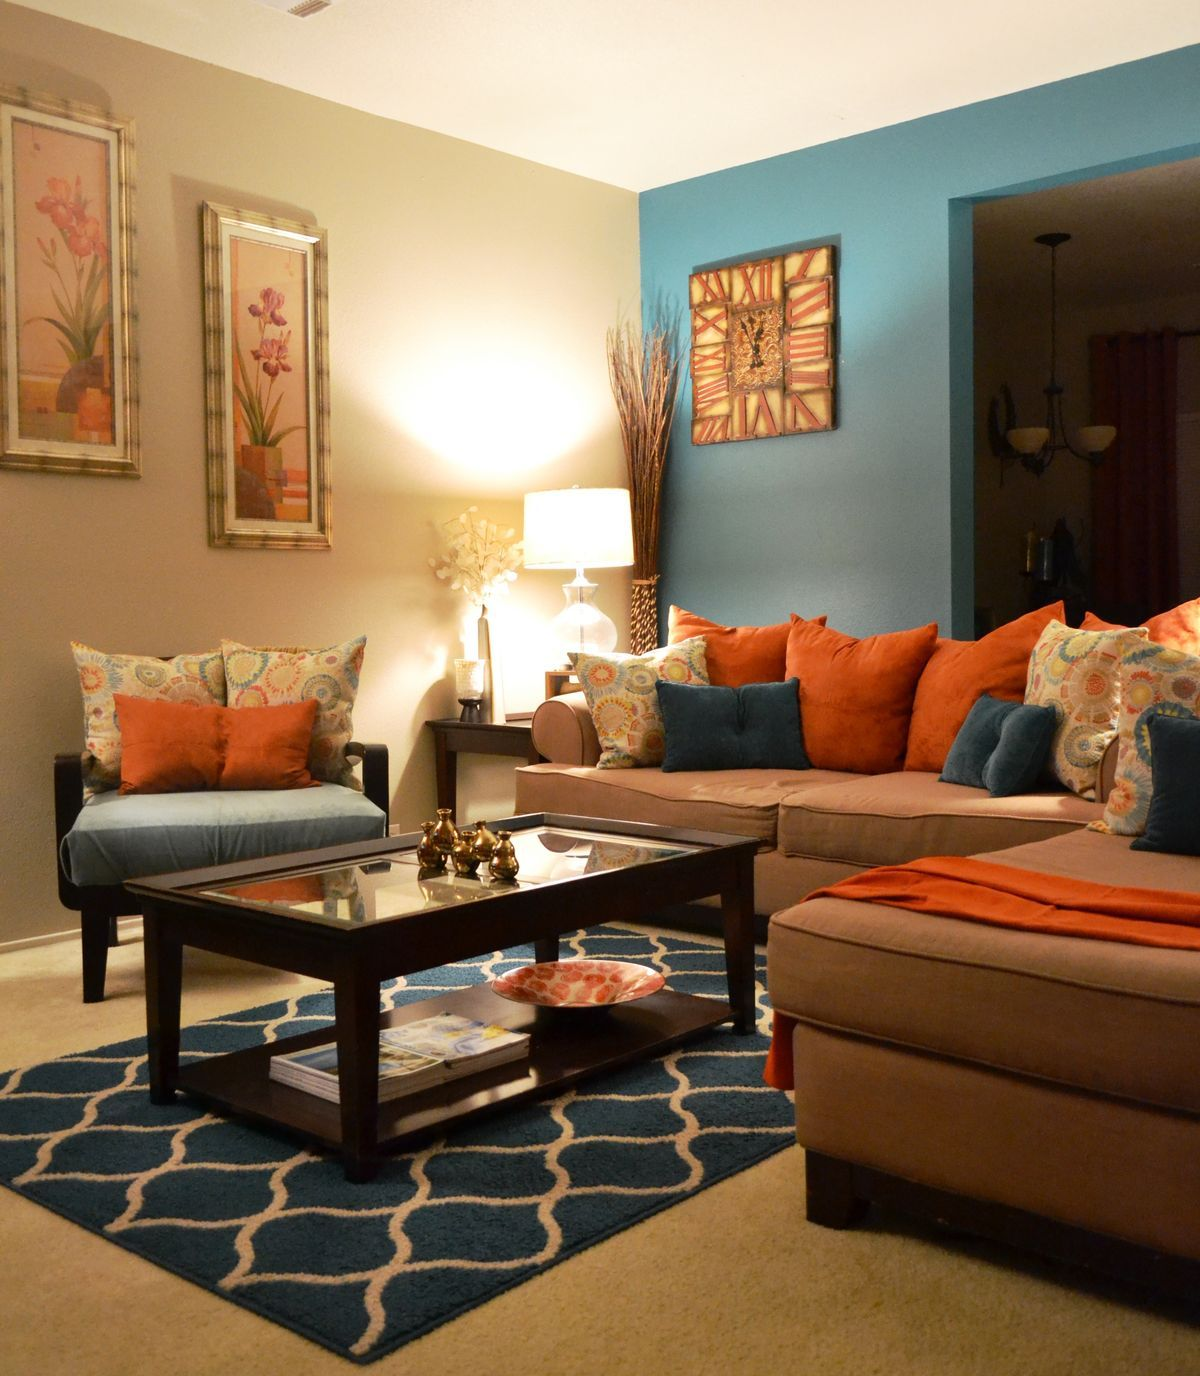 Brown and burnt orange living room - 959558b7a3913104a5cf8d0b8a3810c7 Jpg 1 200 1 376 Pixels Living Room Orangeorange